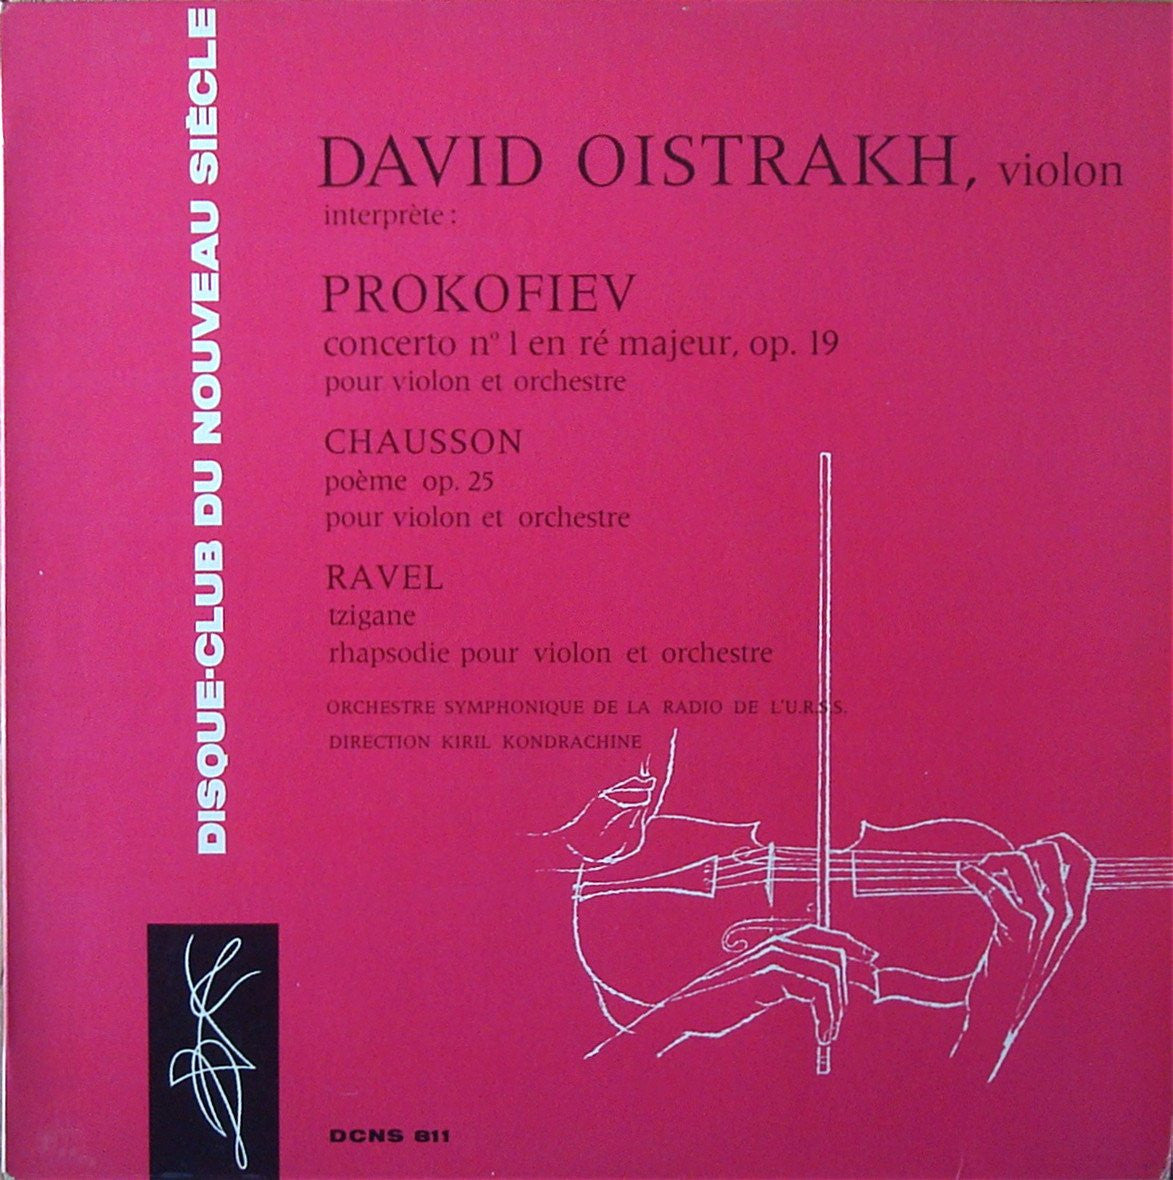 Oistrakh Prokofiev Violin Concerto No 1 Ravel Chausson Dcns 811 Casals Classical Lps Cds